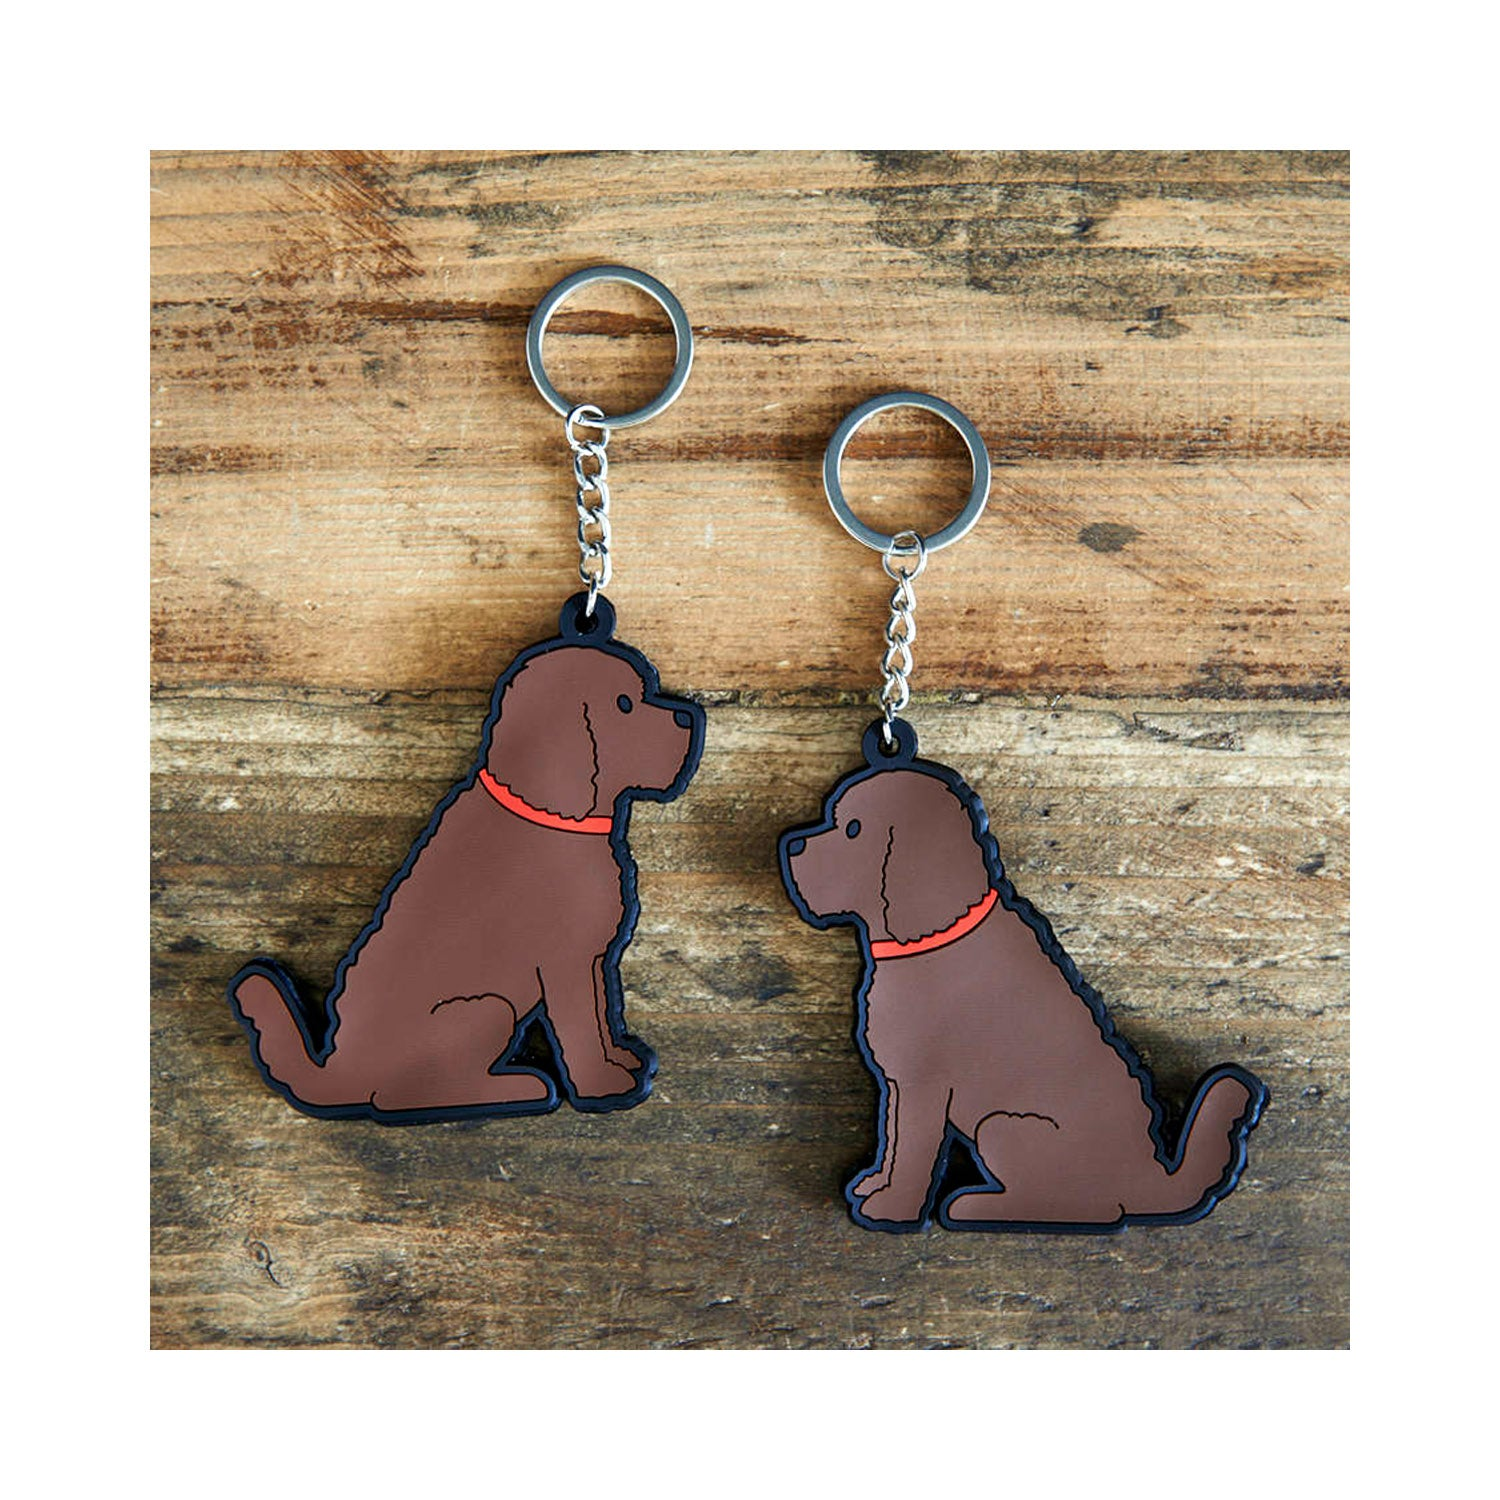 Dog Lover Gifts available at Dog Krazy Gifts - Herbie The Cockerpoo Keyring - part of the Sweet William range available from Dog Krazy Gifts